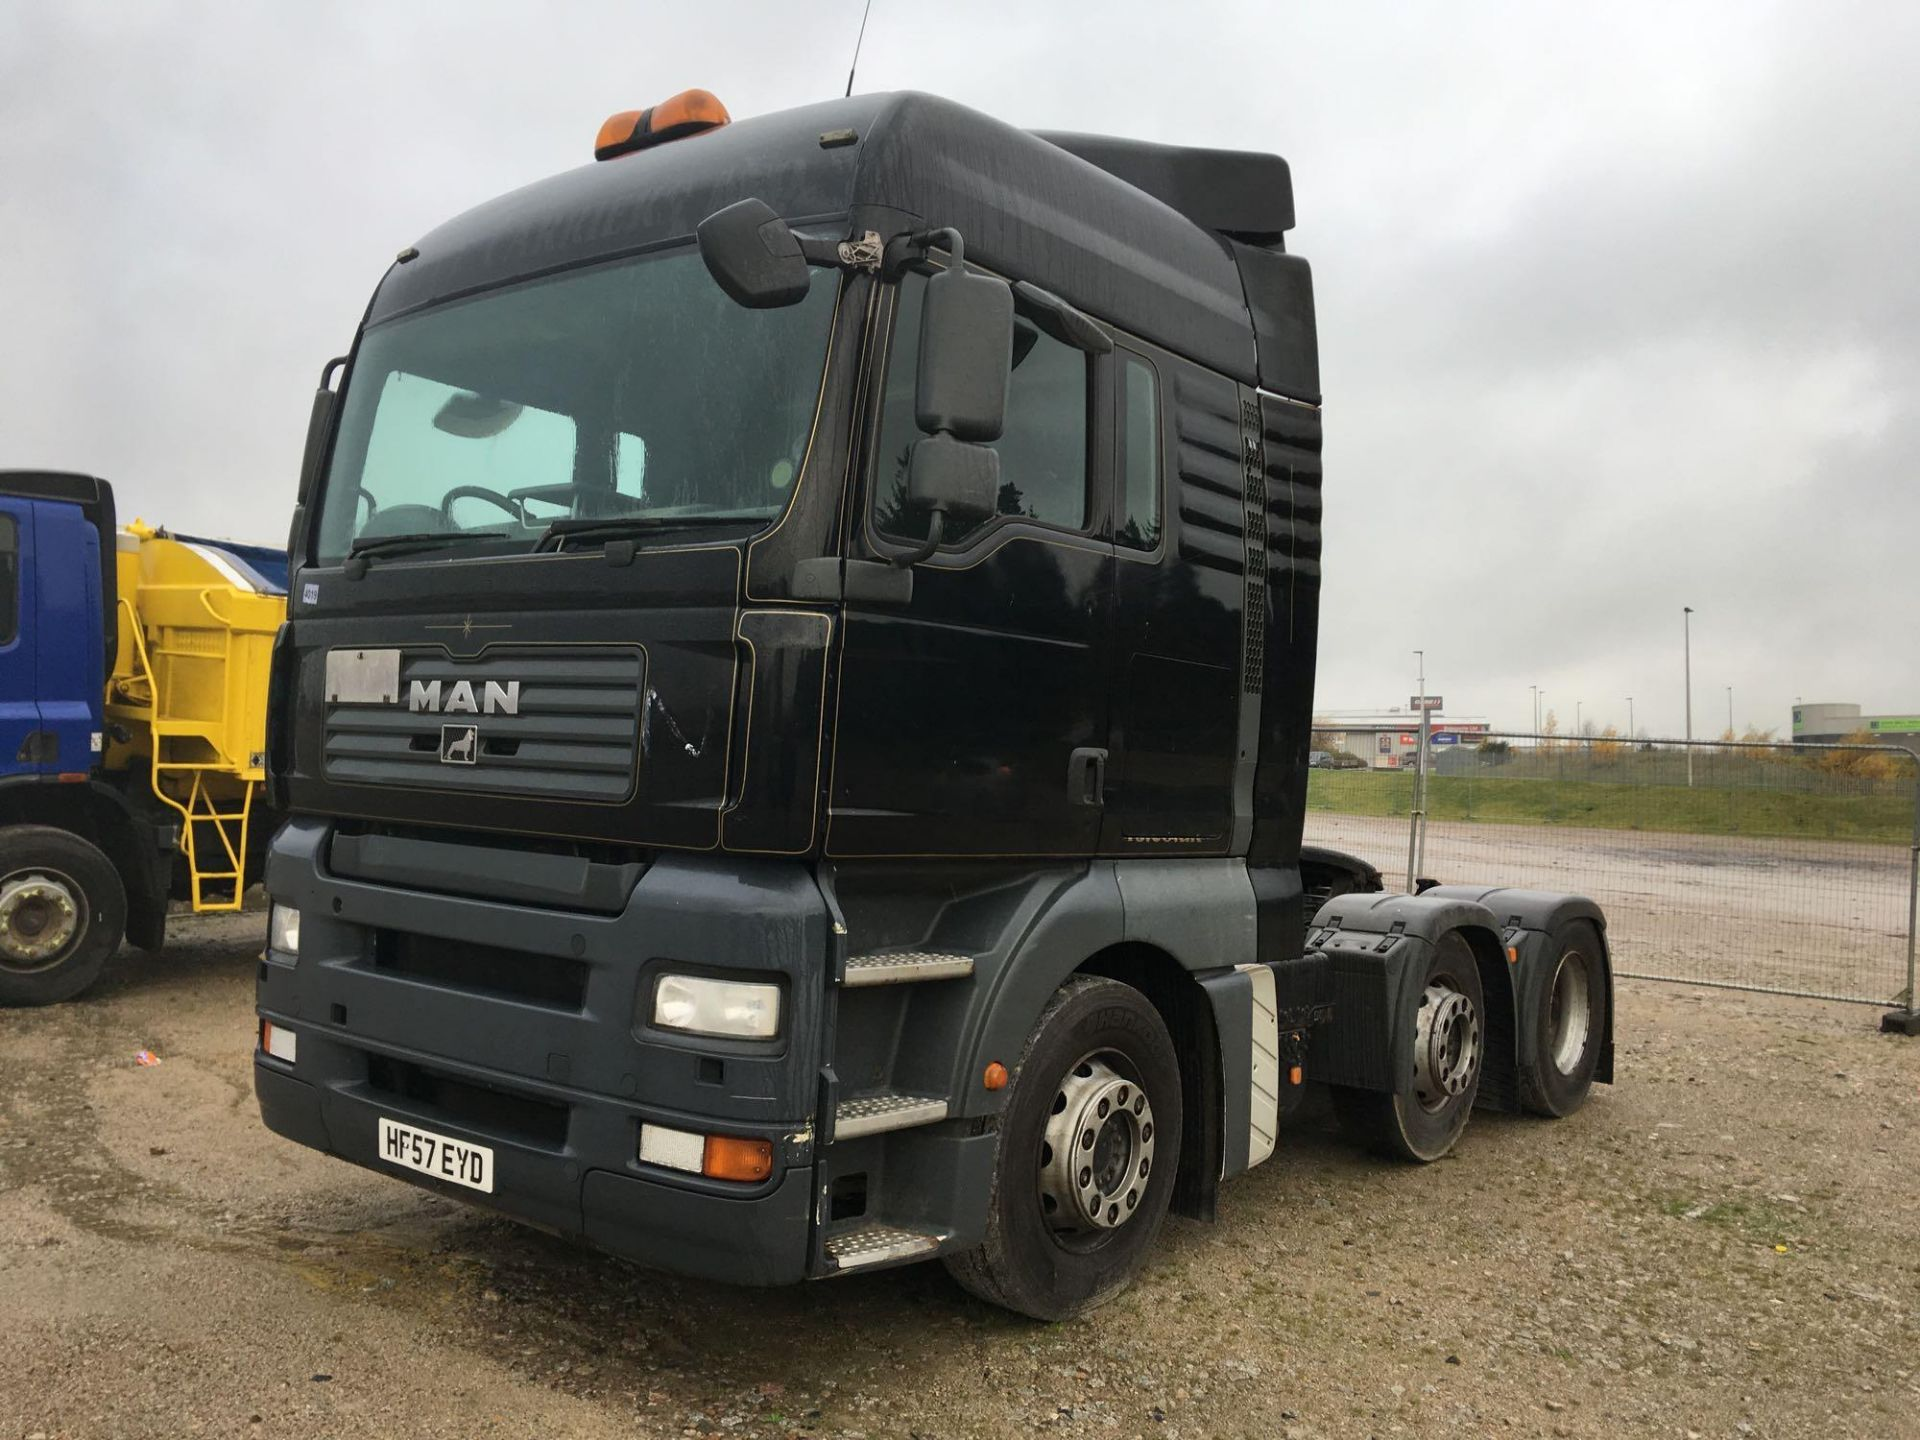 Lot 4019 - Man Unknown - 10518cc Truck